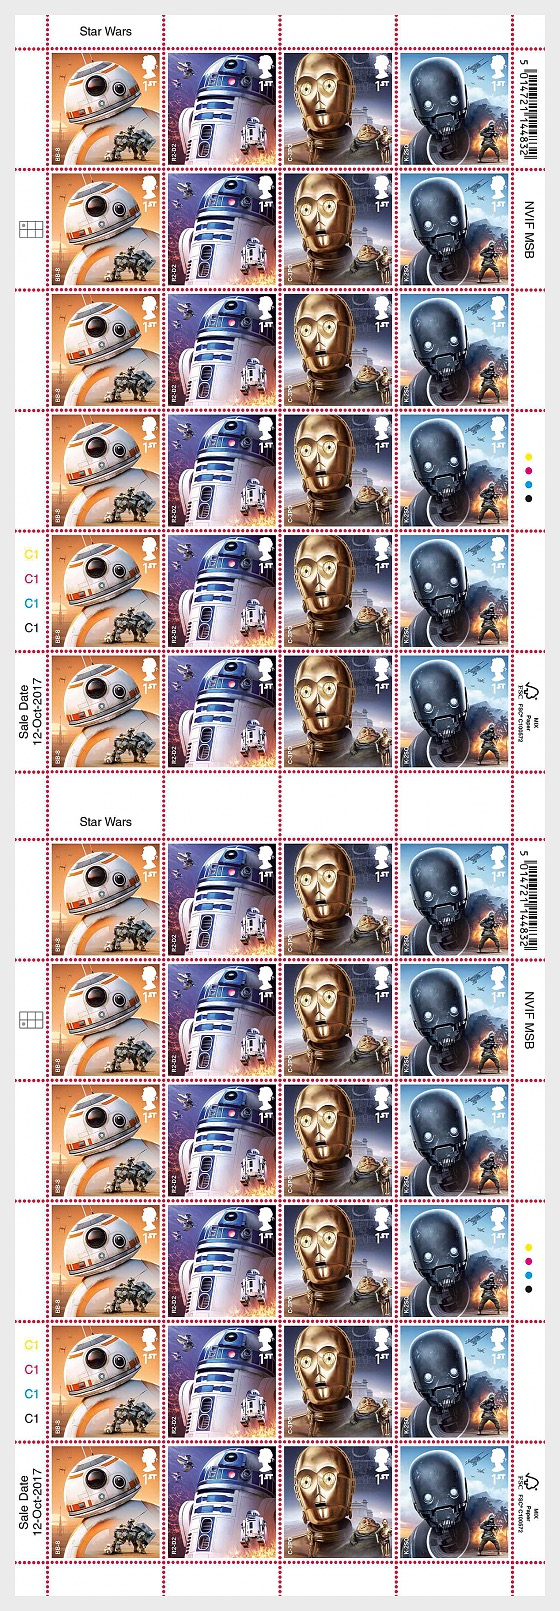 PRE ORDER Star Wars: The Last Jedi - Stamp Sheet - Droids (Full Sheet of 24) - Sheetlets